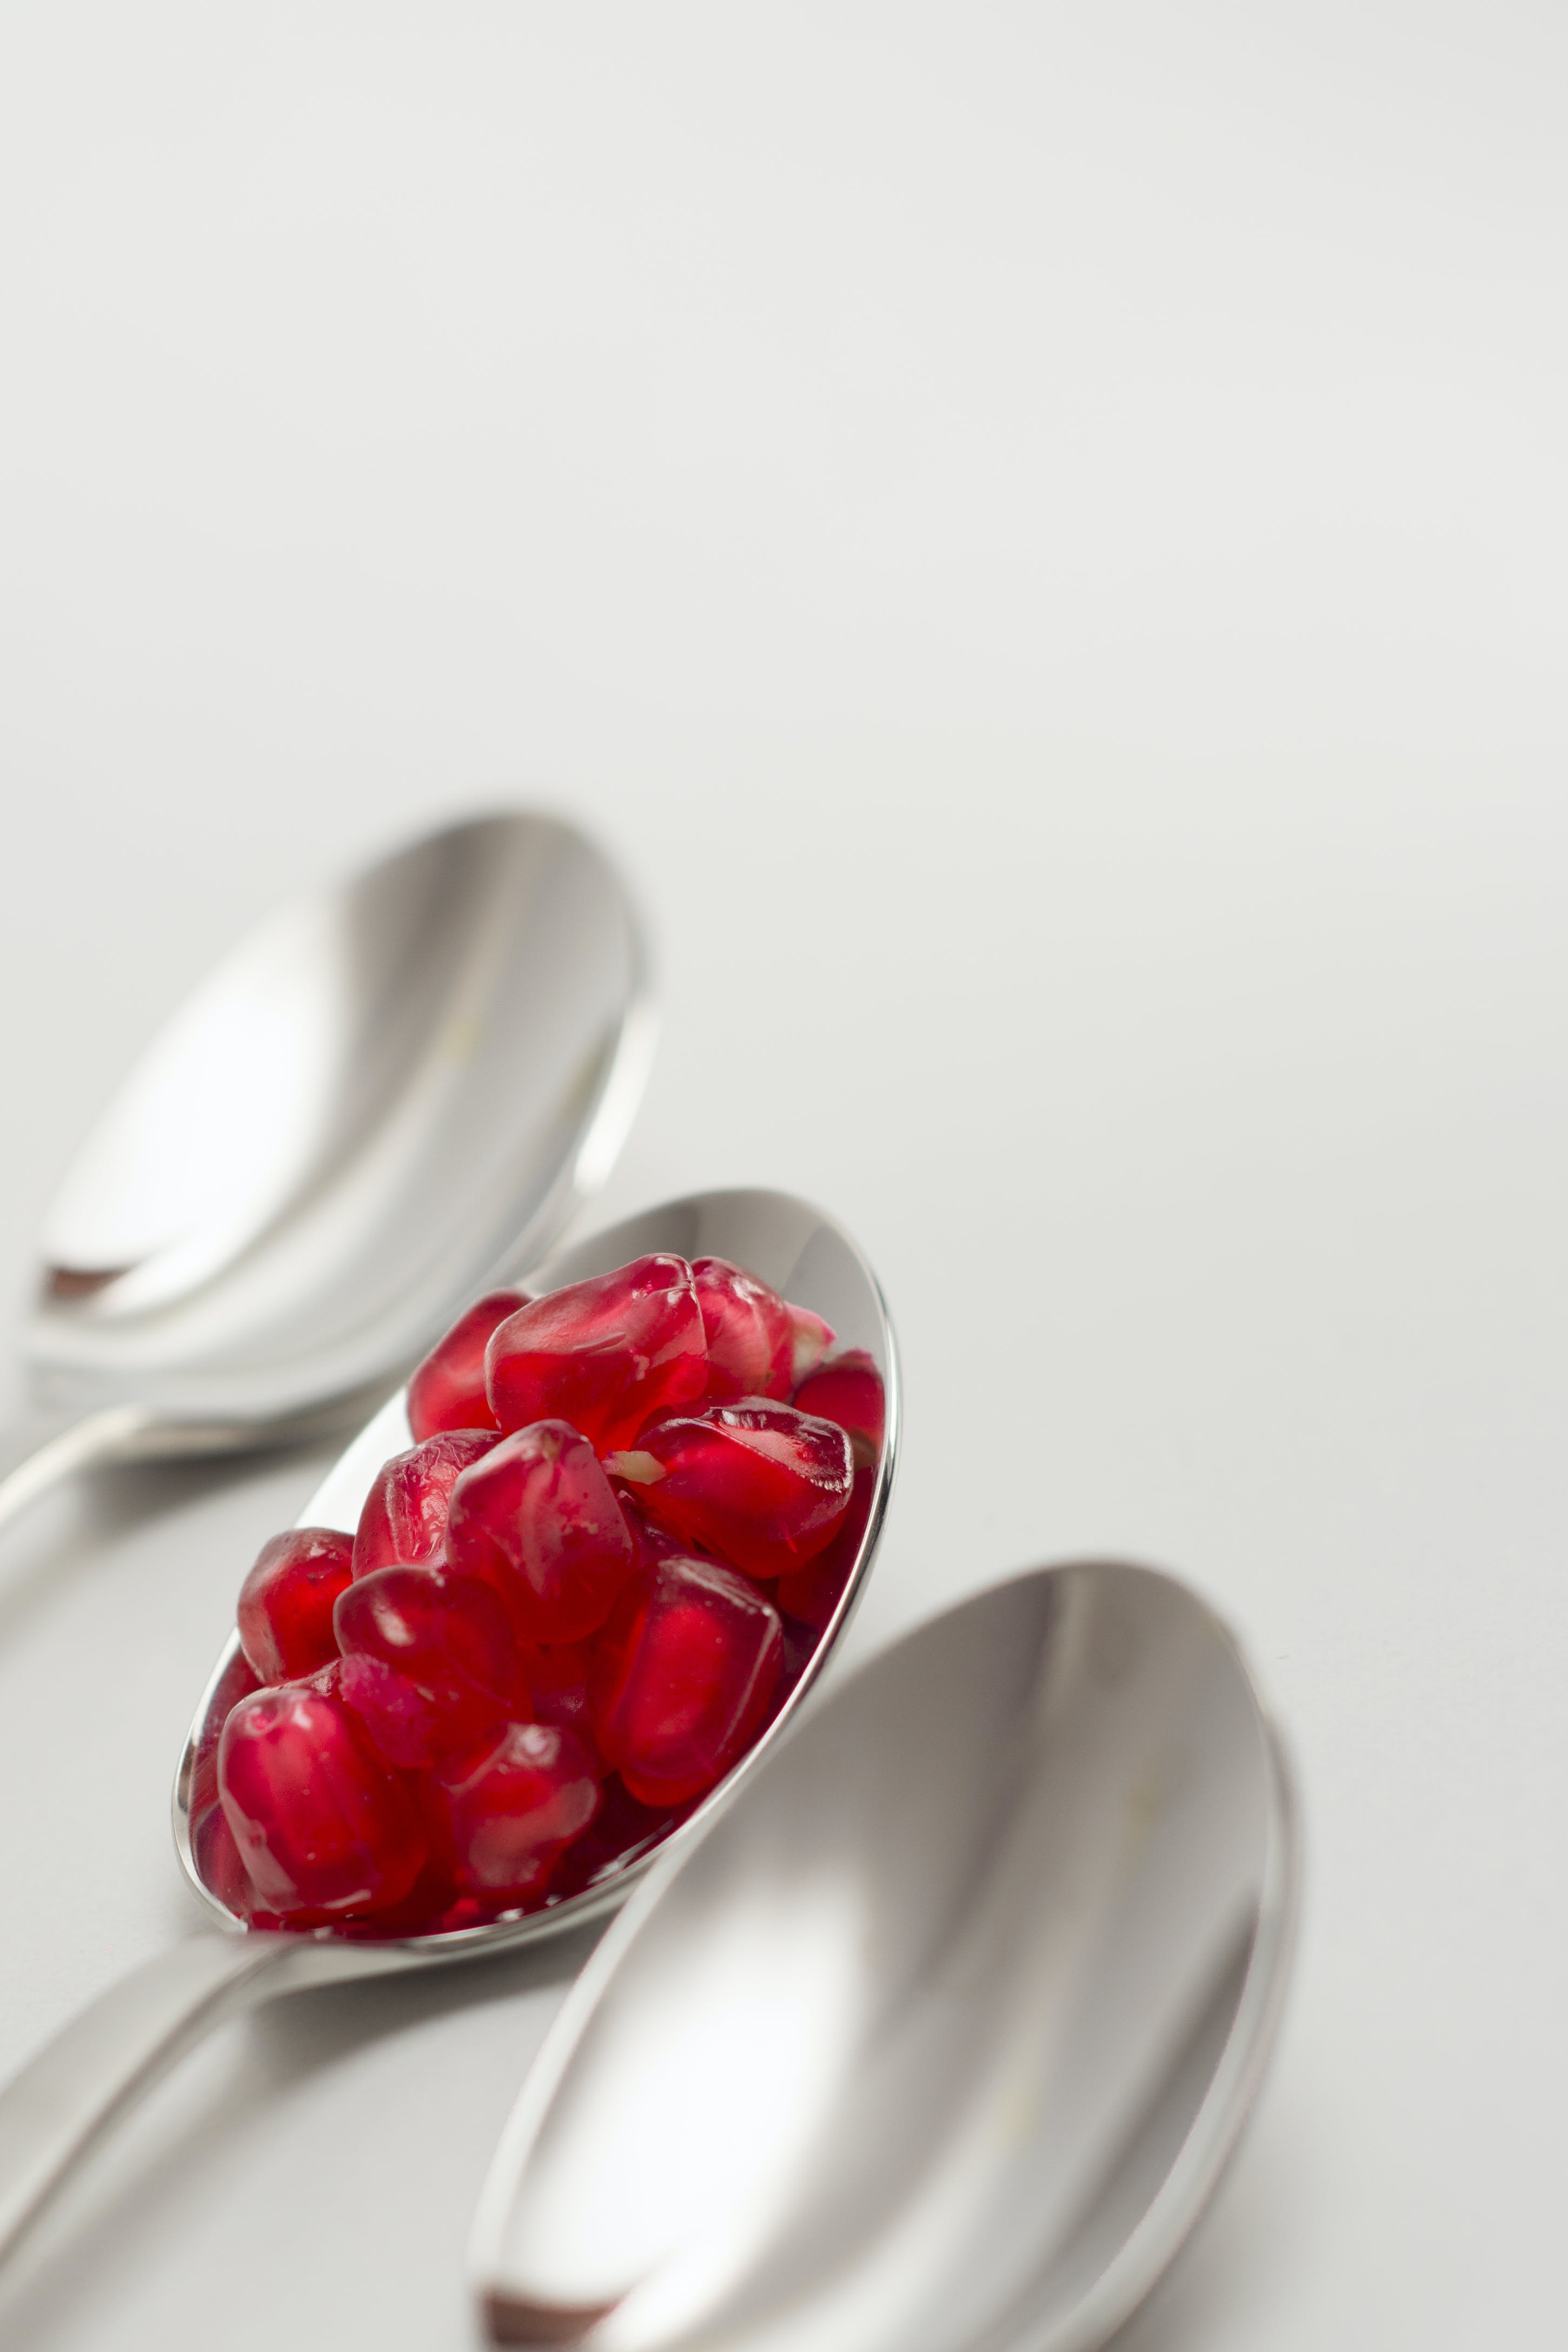 Pomegranate Seed on Spoon Between Empty Spoons